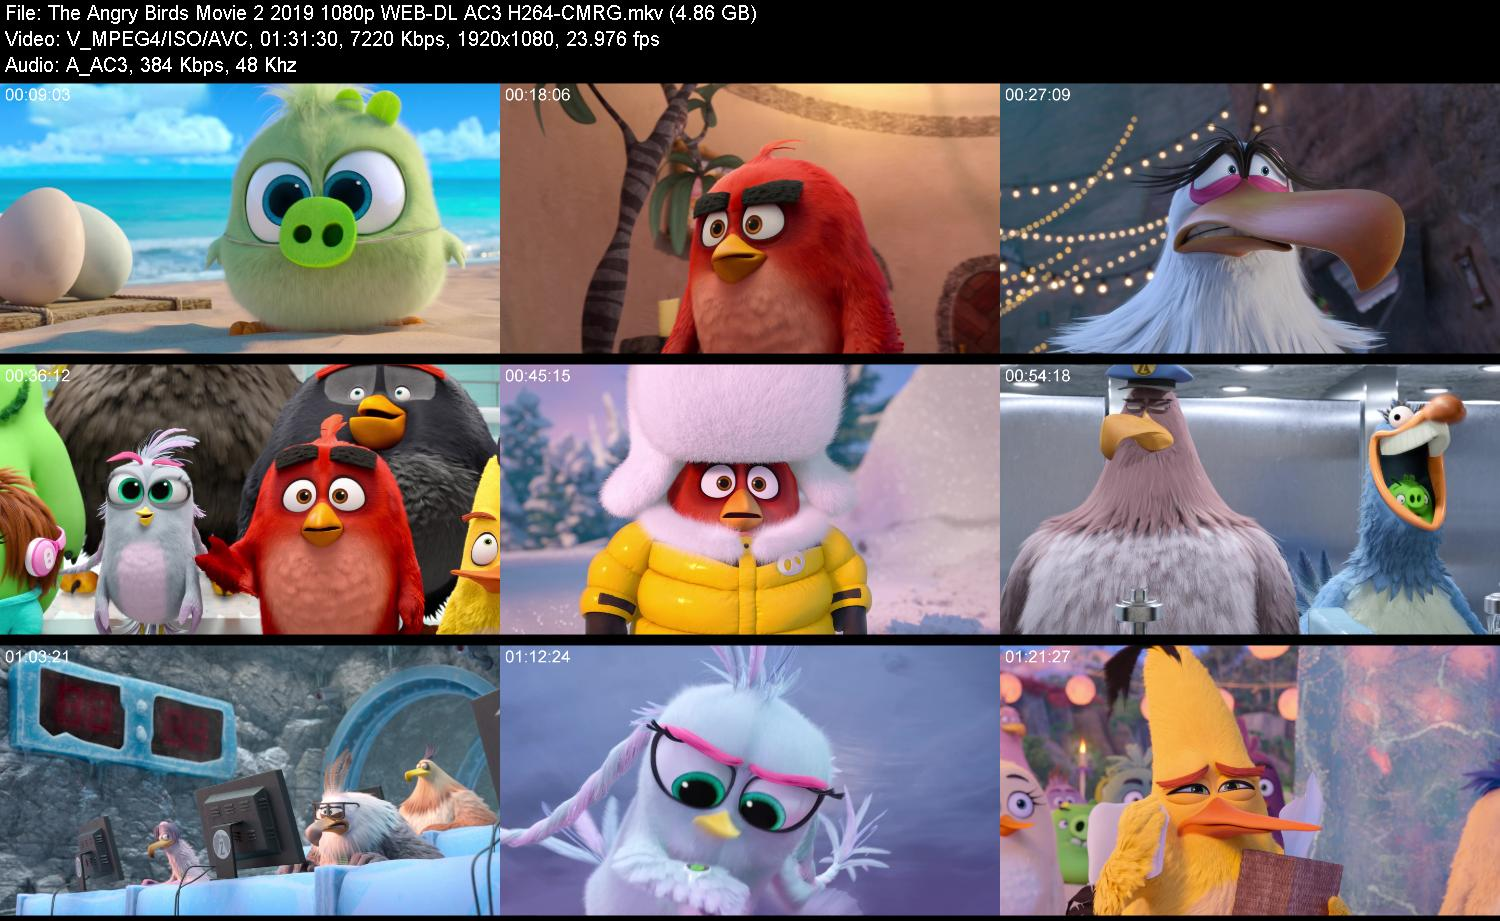 [Bild: 125104501_the-angry-birds-movie-2-2019-1...mrgtgx.jpg]